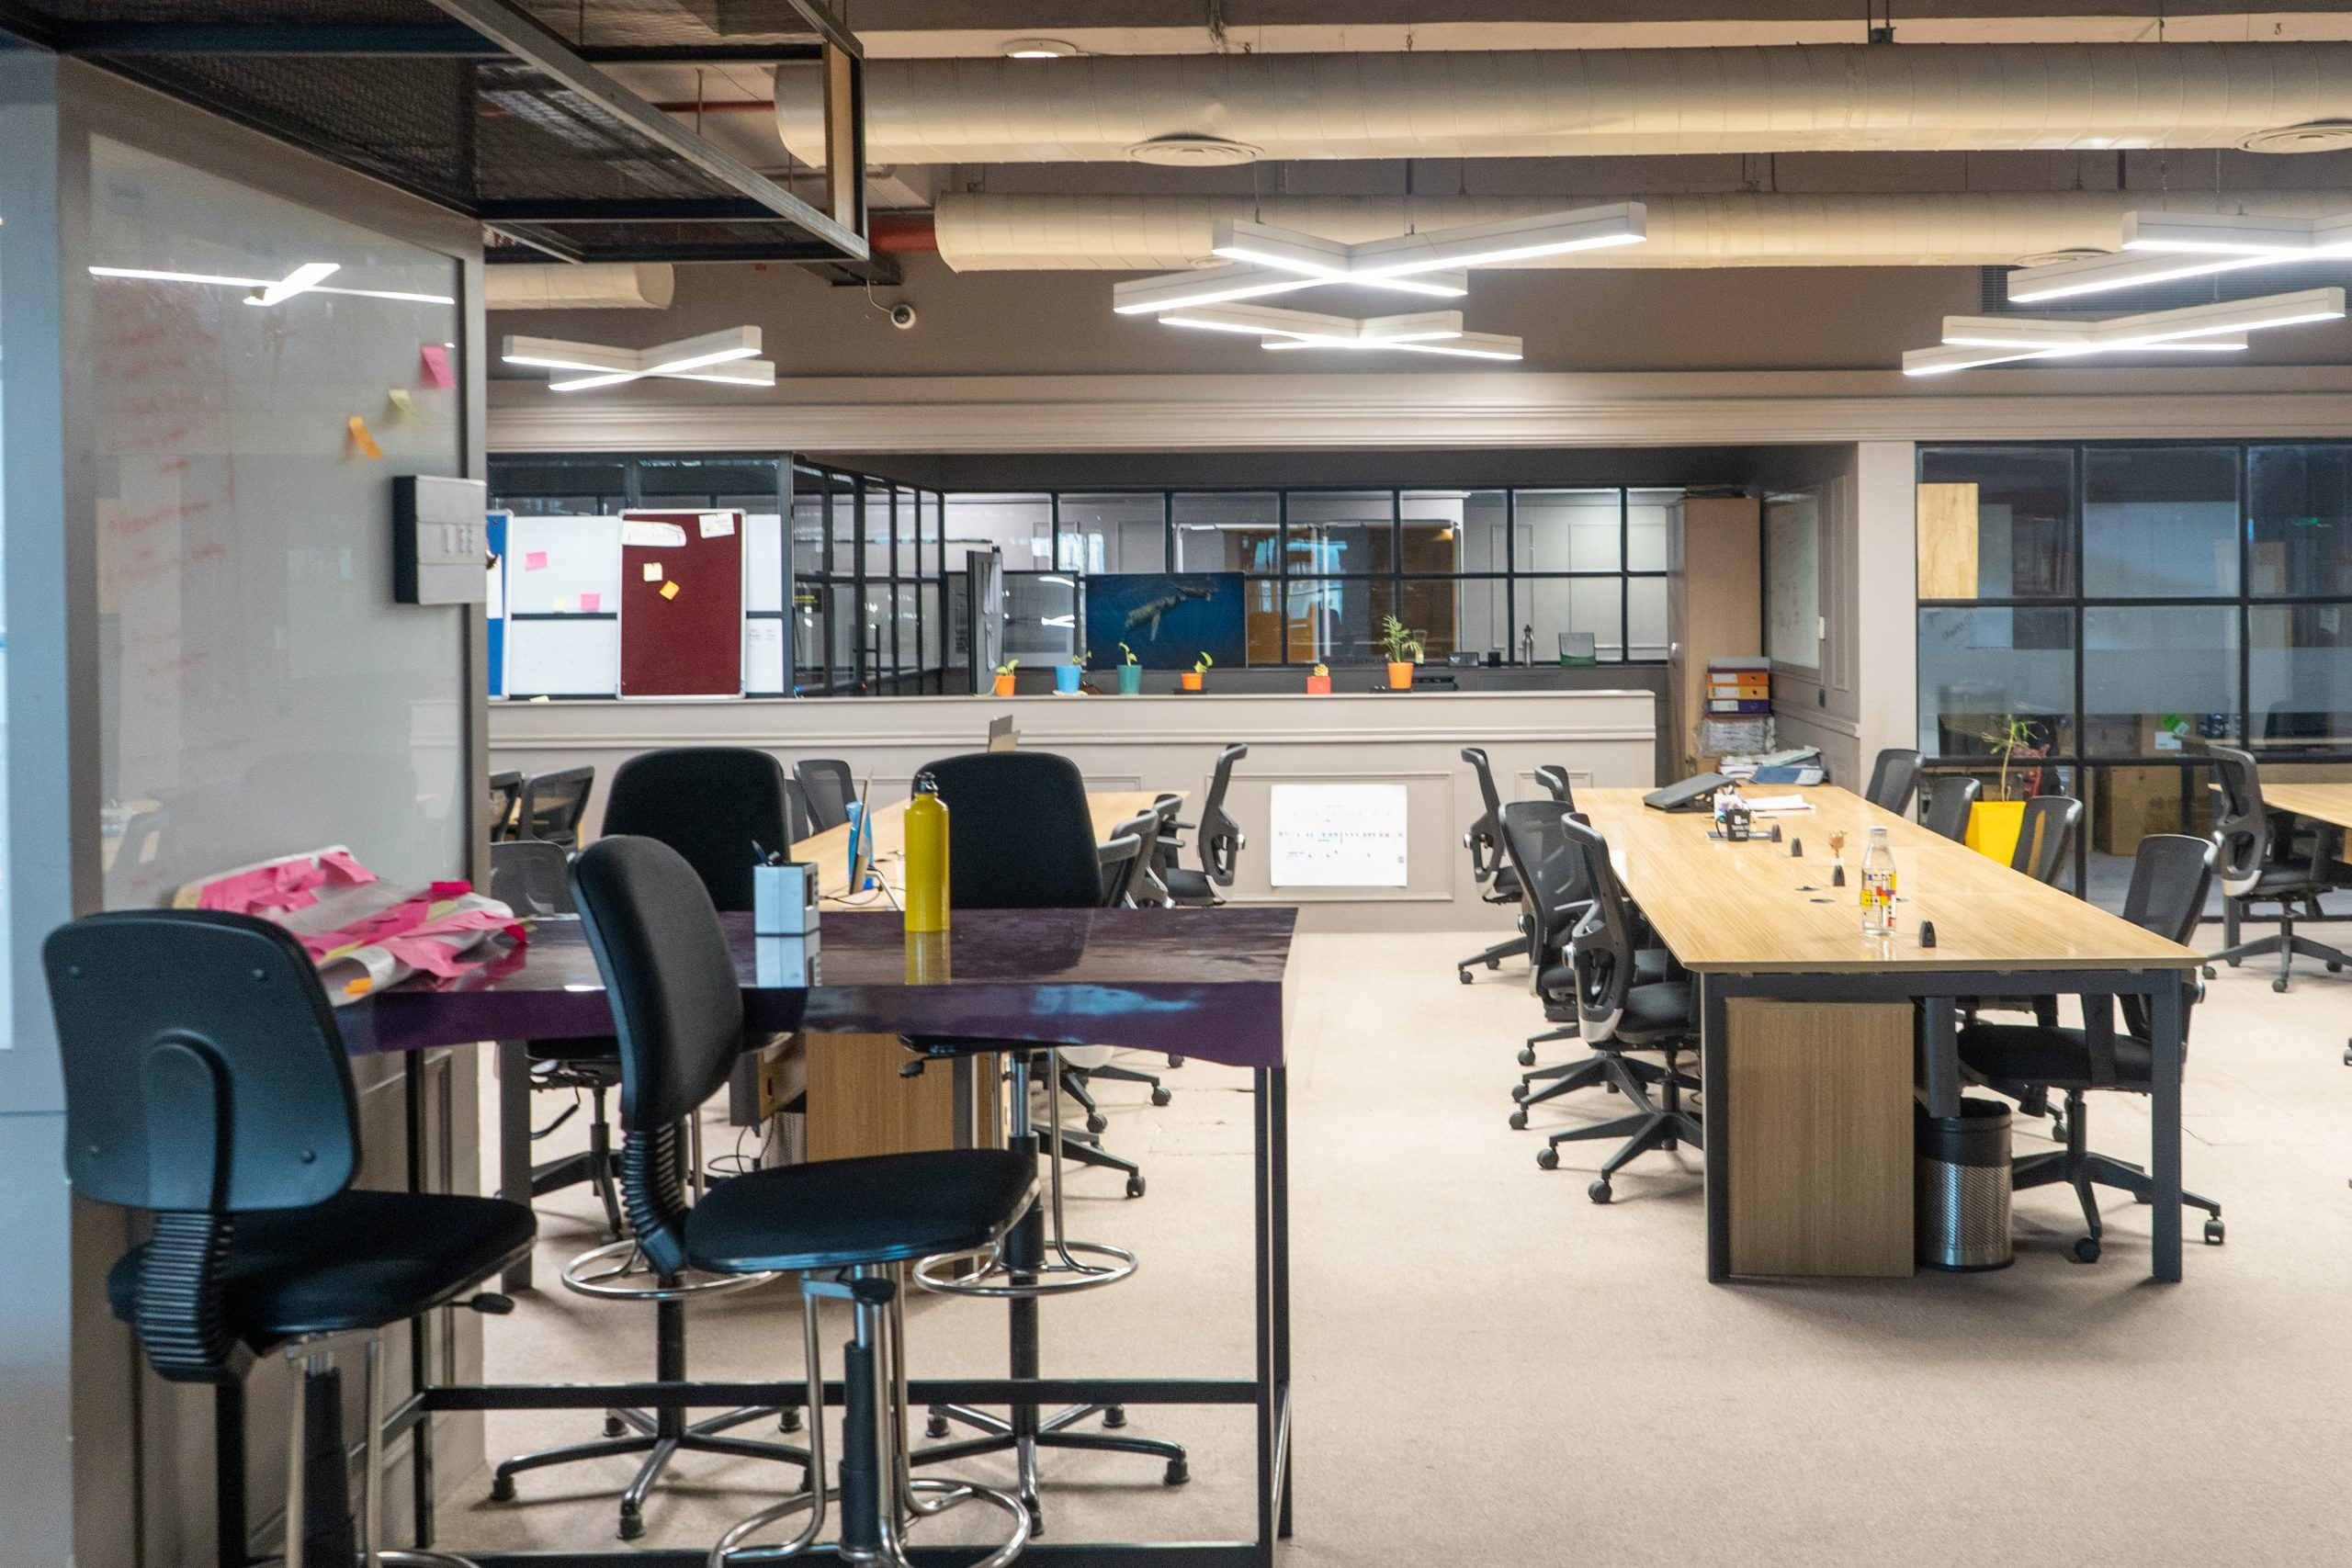 Open space of an office